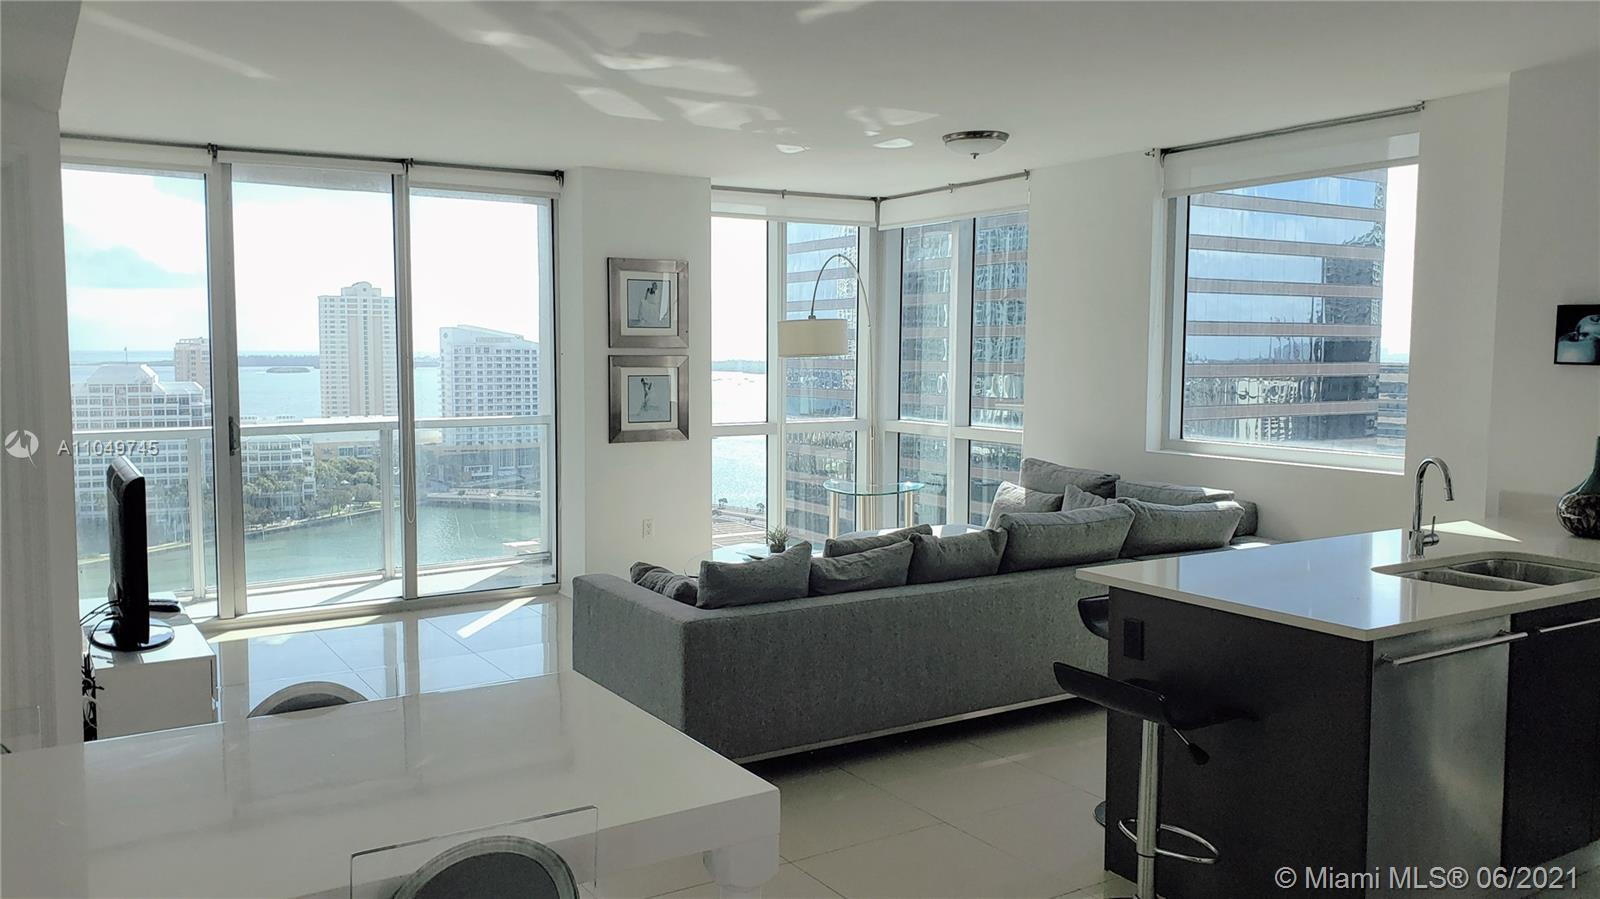 Spacious 2 Bedroom condo with breathtaking Ocean and Bay views! This impeccable corner unit features an exceptional open floor plan. 500 Brickell offers 5-star resort-style amenities including a health club and spa. Situated in the heart of Brickell surrounded by world-class shopping, fine dining, and more!